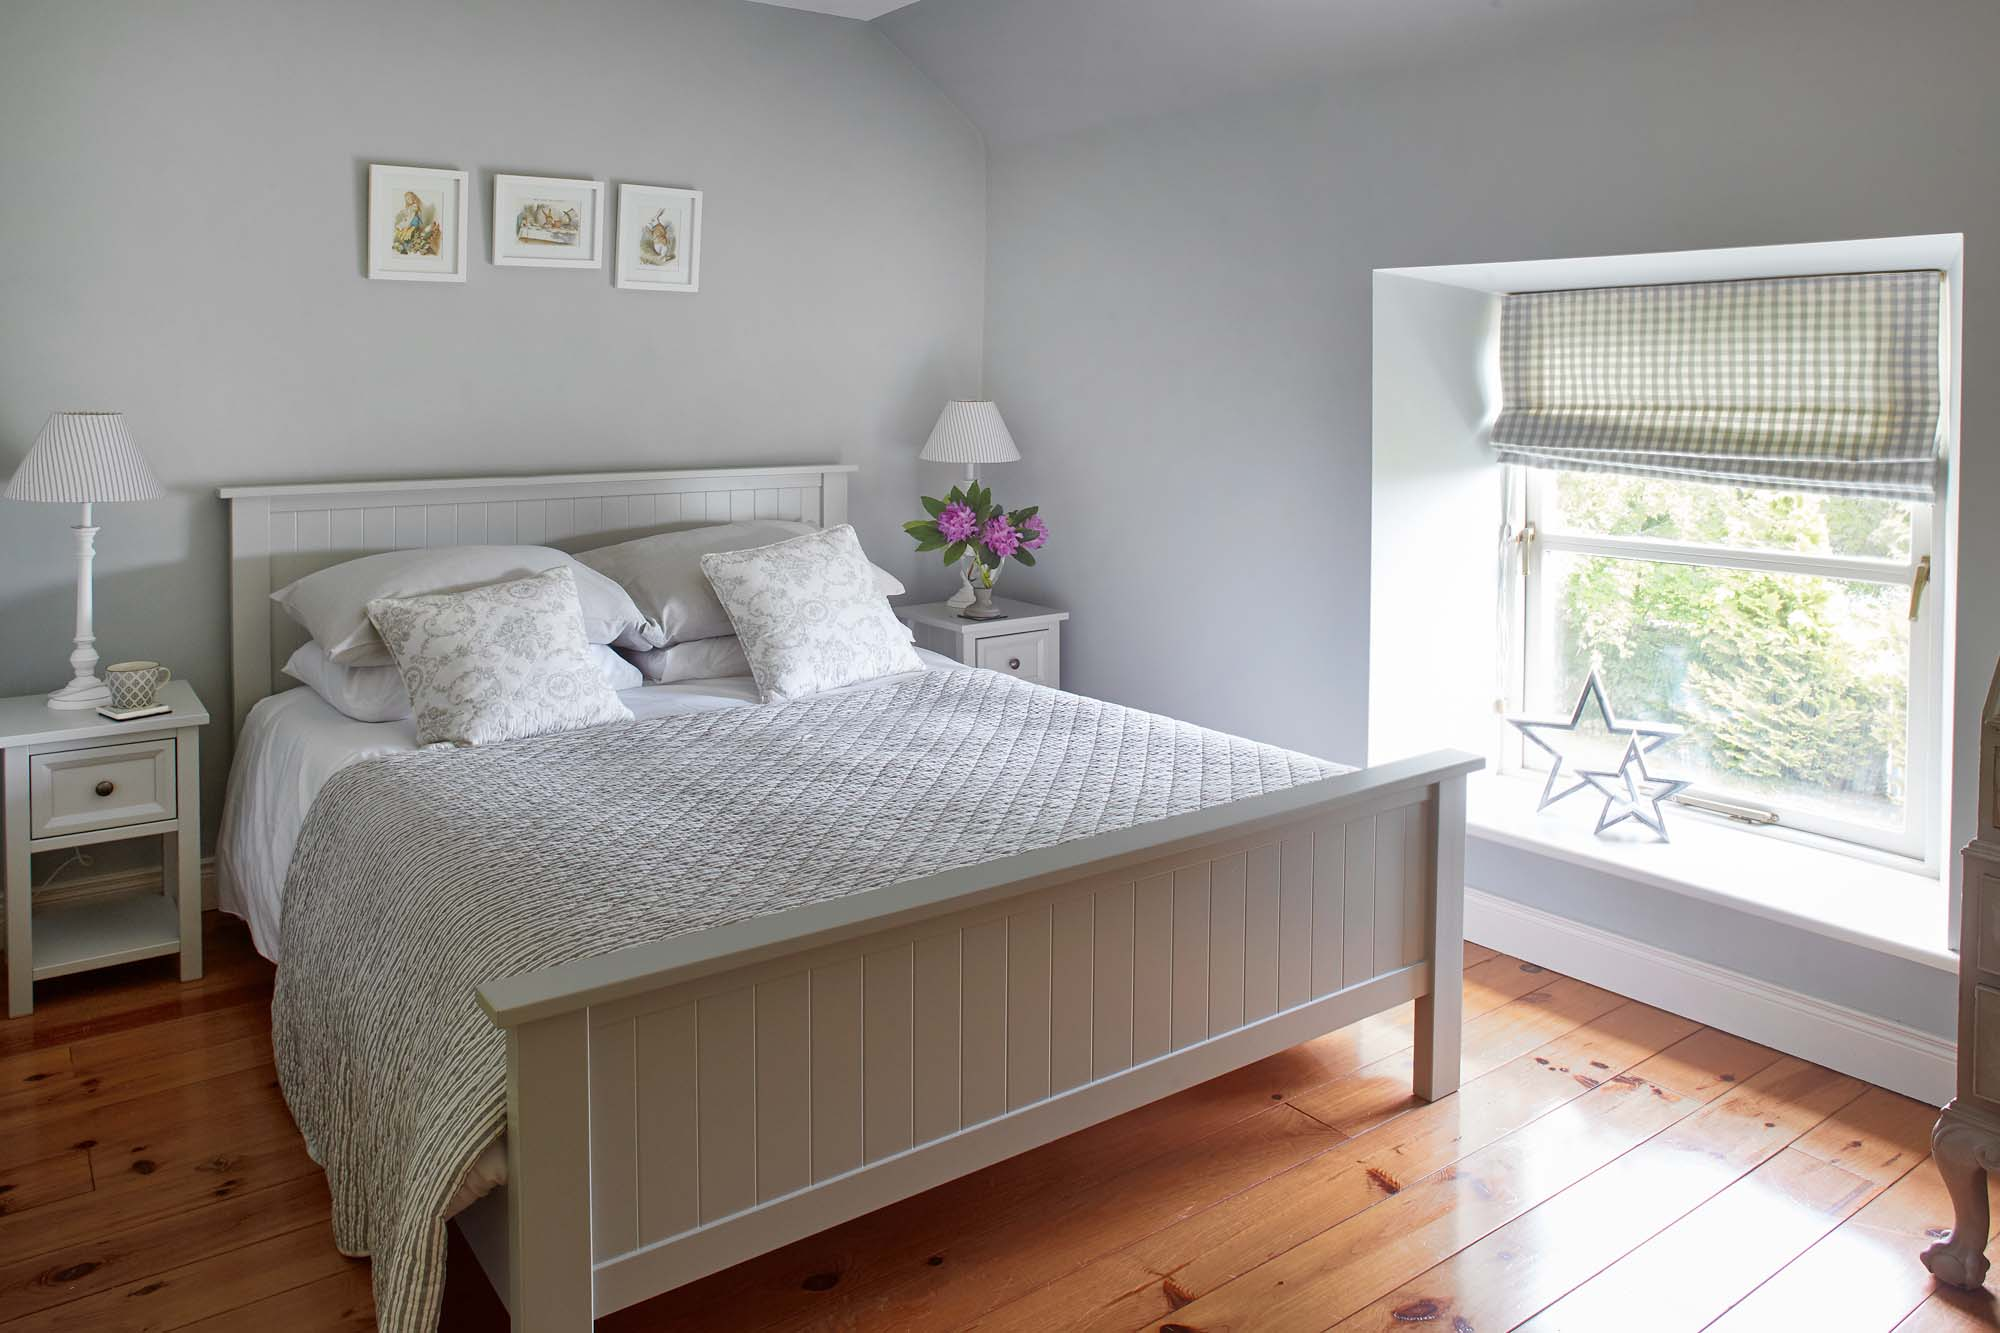 Calm relaxing double bedroom in converted farmhouse in Co louth Ireland